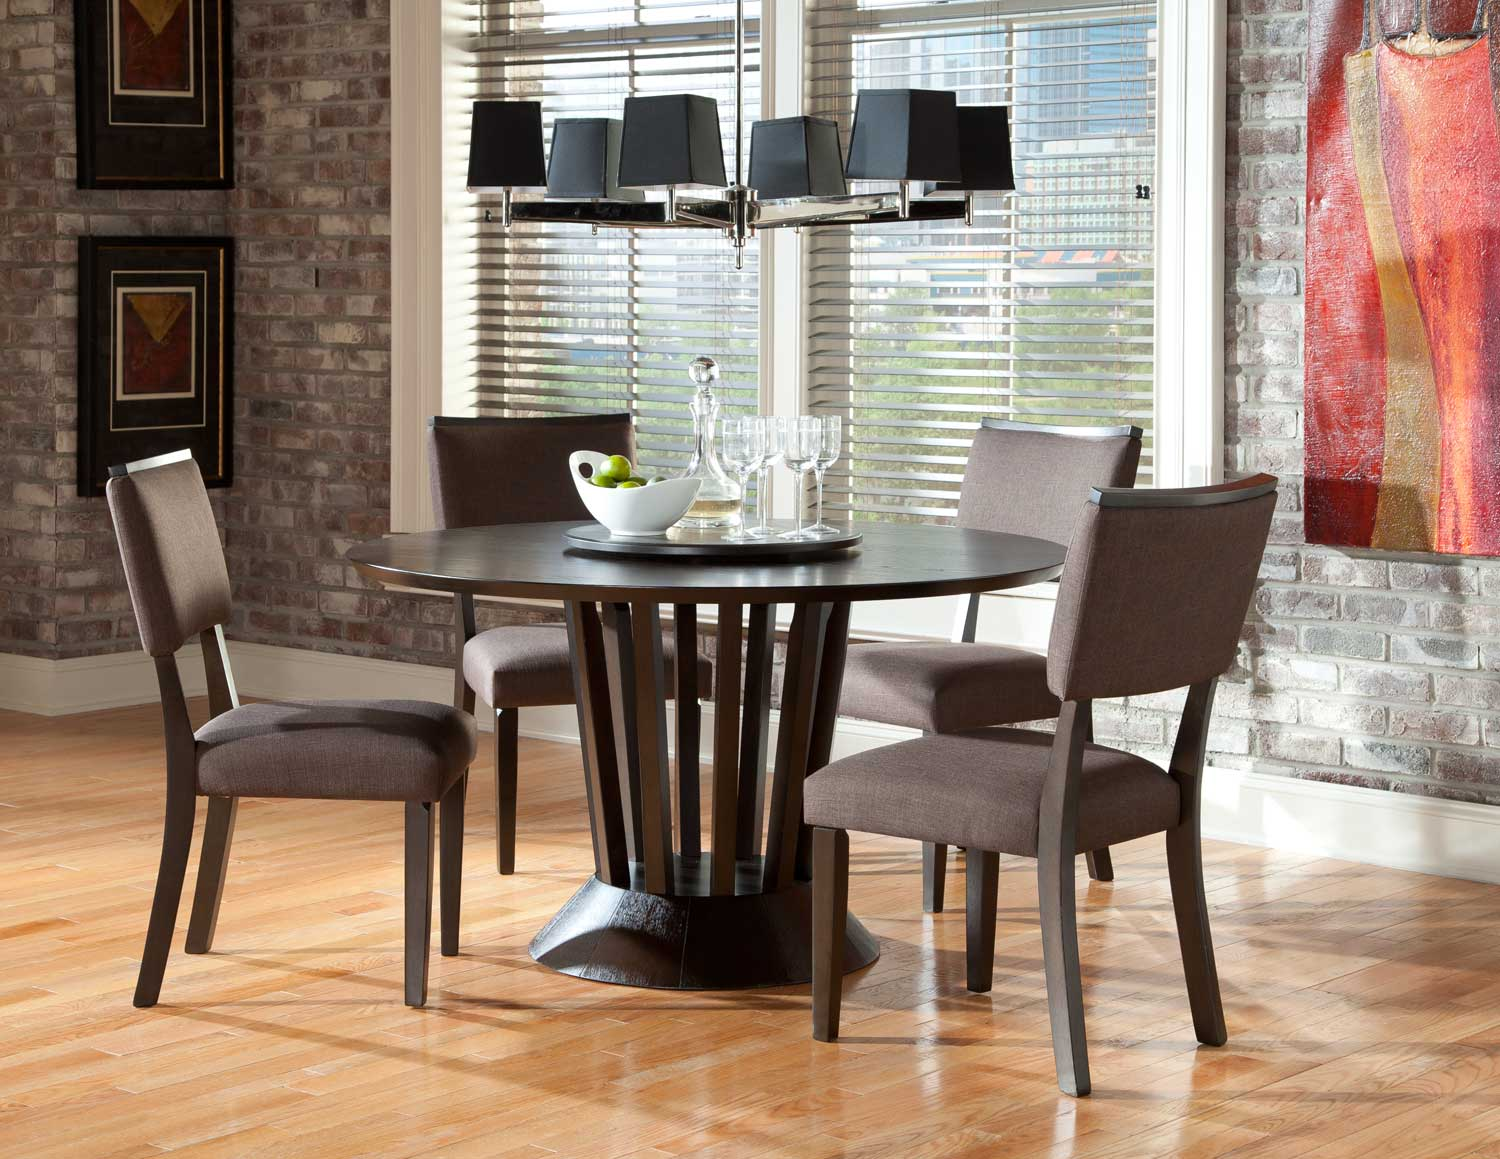 Homelegance Lobelia  Round Dining Set - Dark Walnut